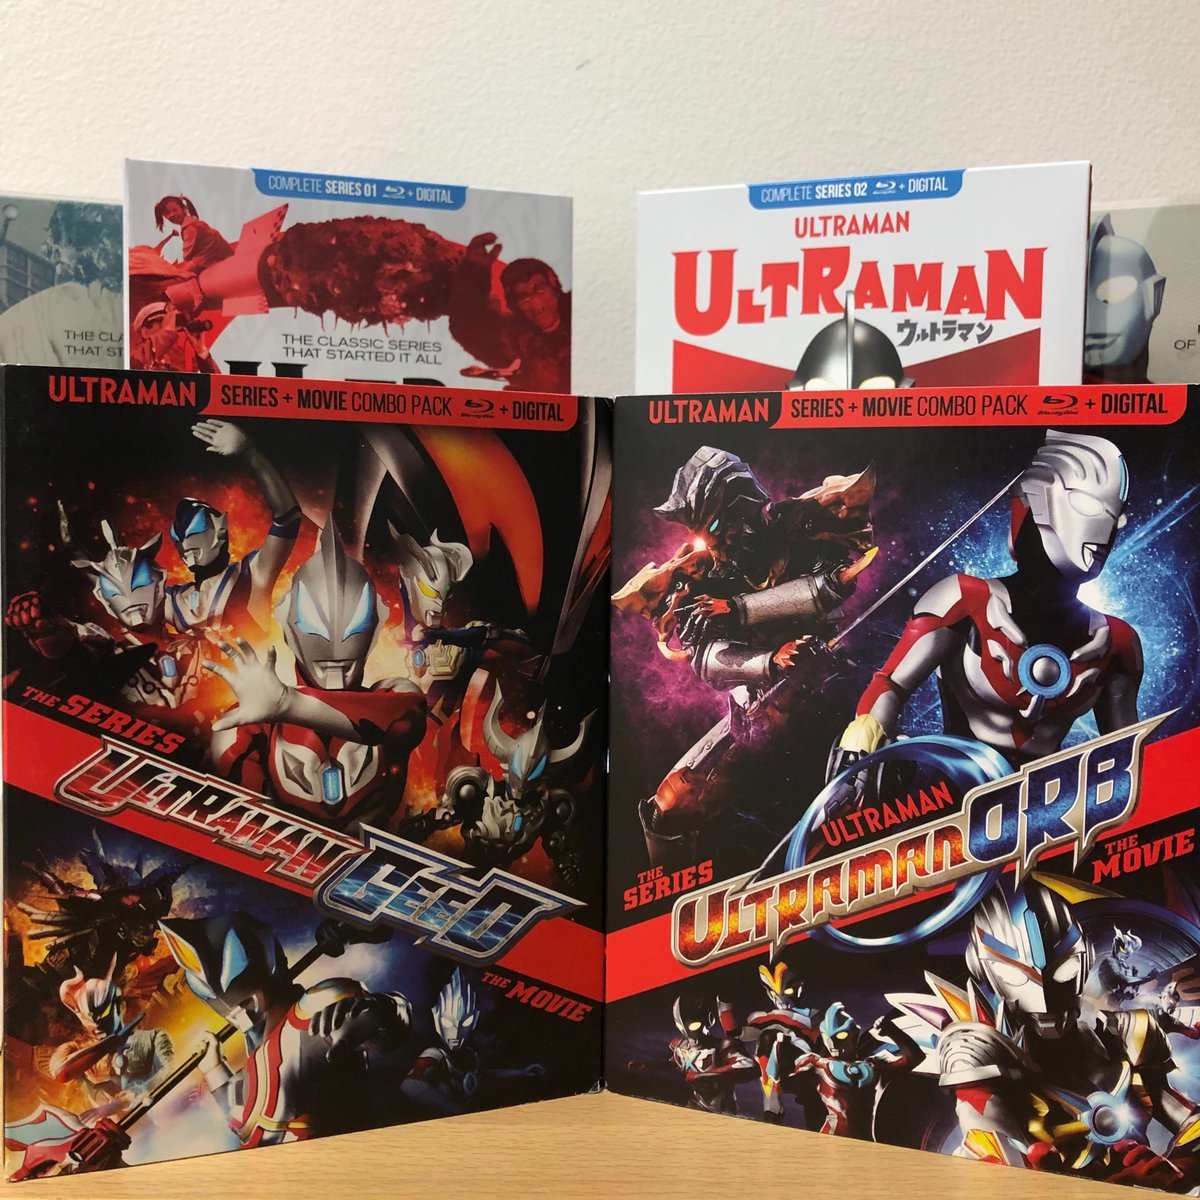 Its #NewReleaseTuesday and we're so excited that #ULTRAMAN GEED and #ULTRAMAN ORB Series & Movie Combo on Blu-ray are available NOW! Get your copy today and check out our other Ultra Series like #Ultraman, #UltramanQ and #UltraSeven!